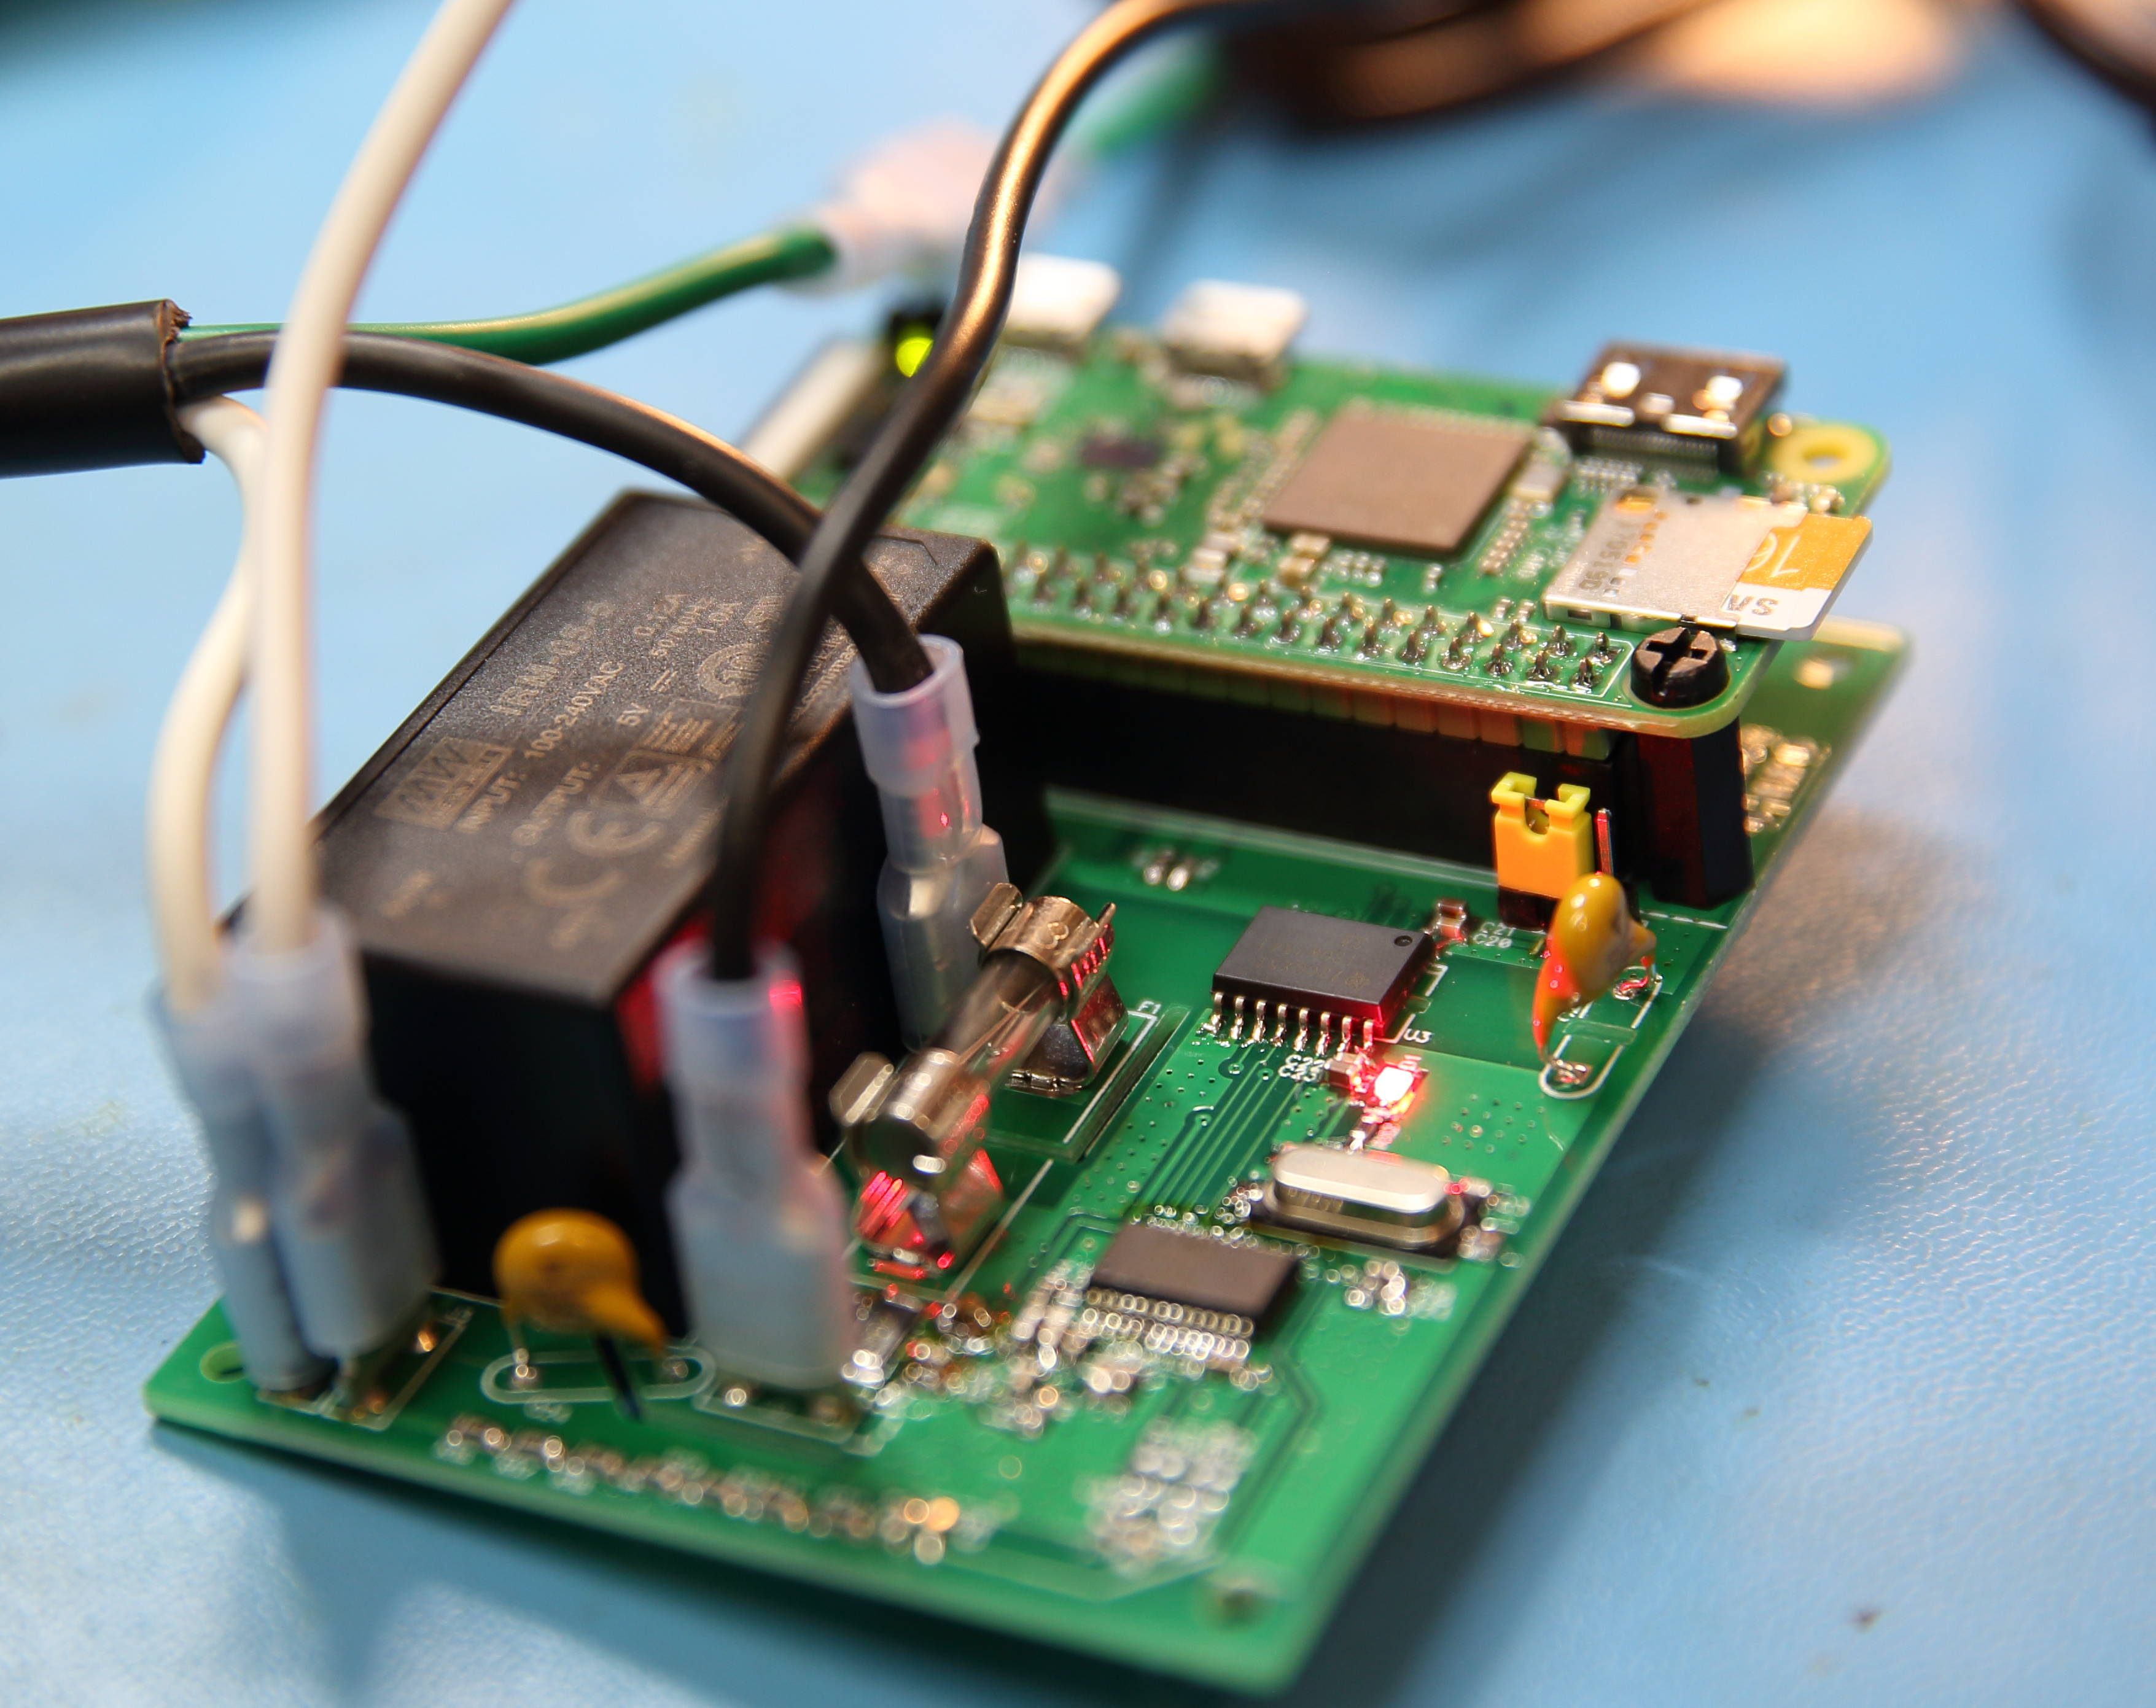 Designing a simple AC power meter – Tools of our Tools